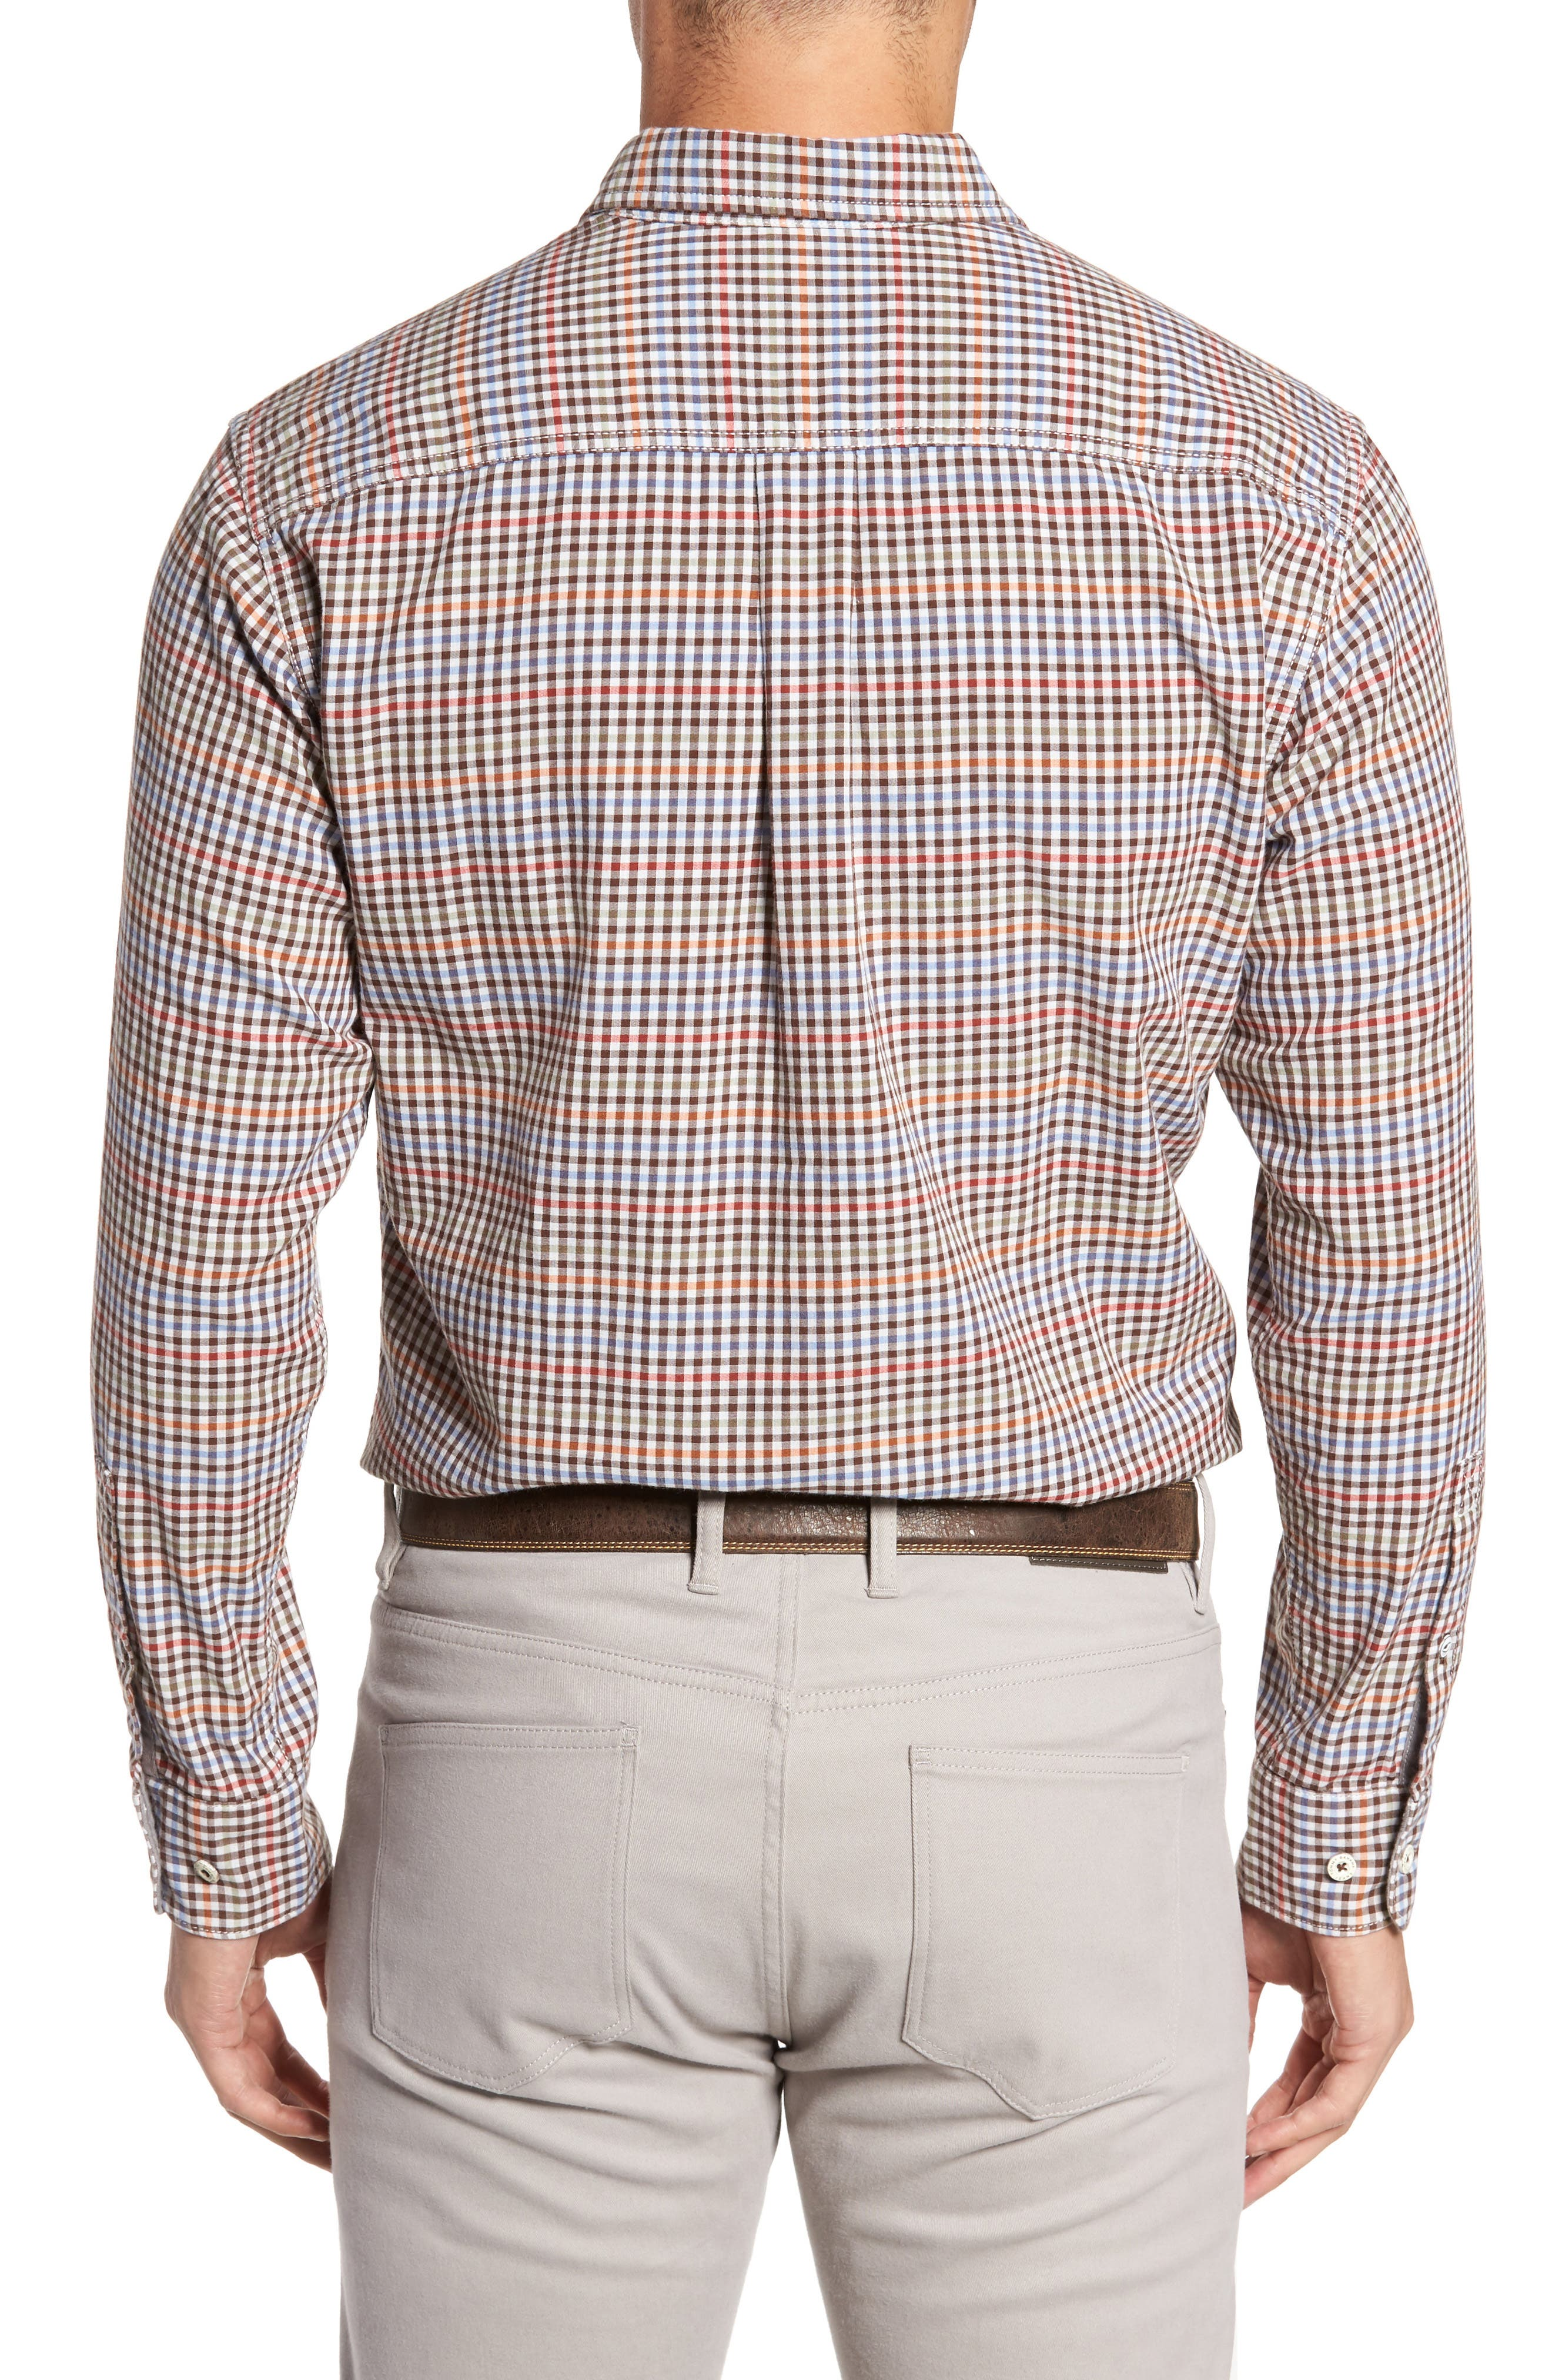 Tan Tan Regular Fit Check Sport Shirt,                             Alternate thumbnail 2, color,                             Vapor